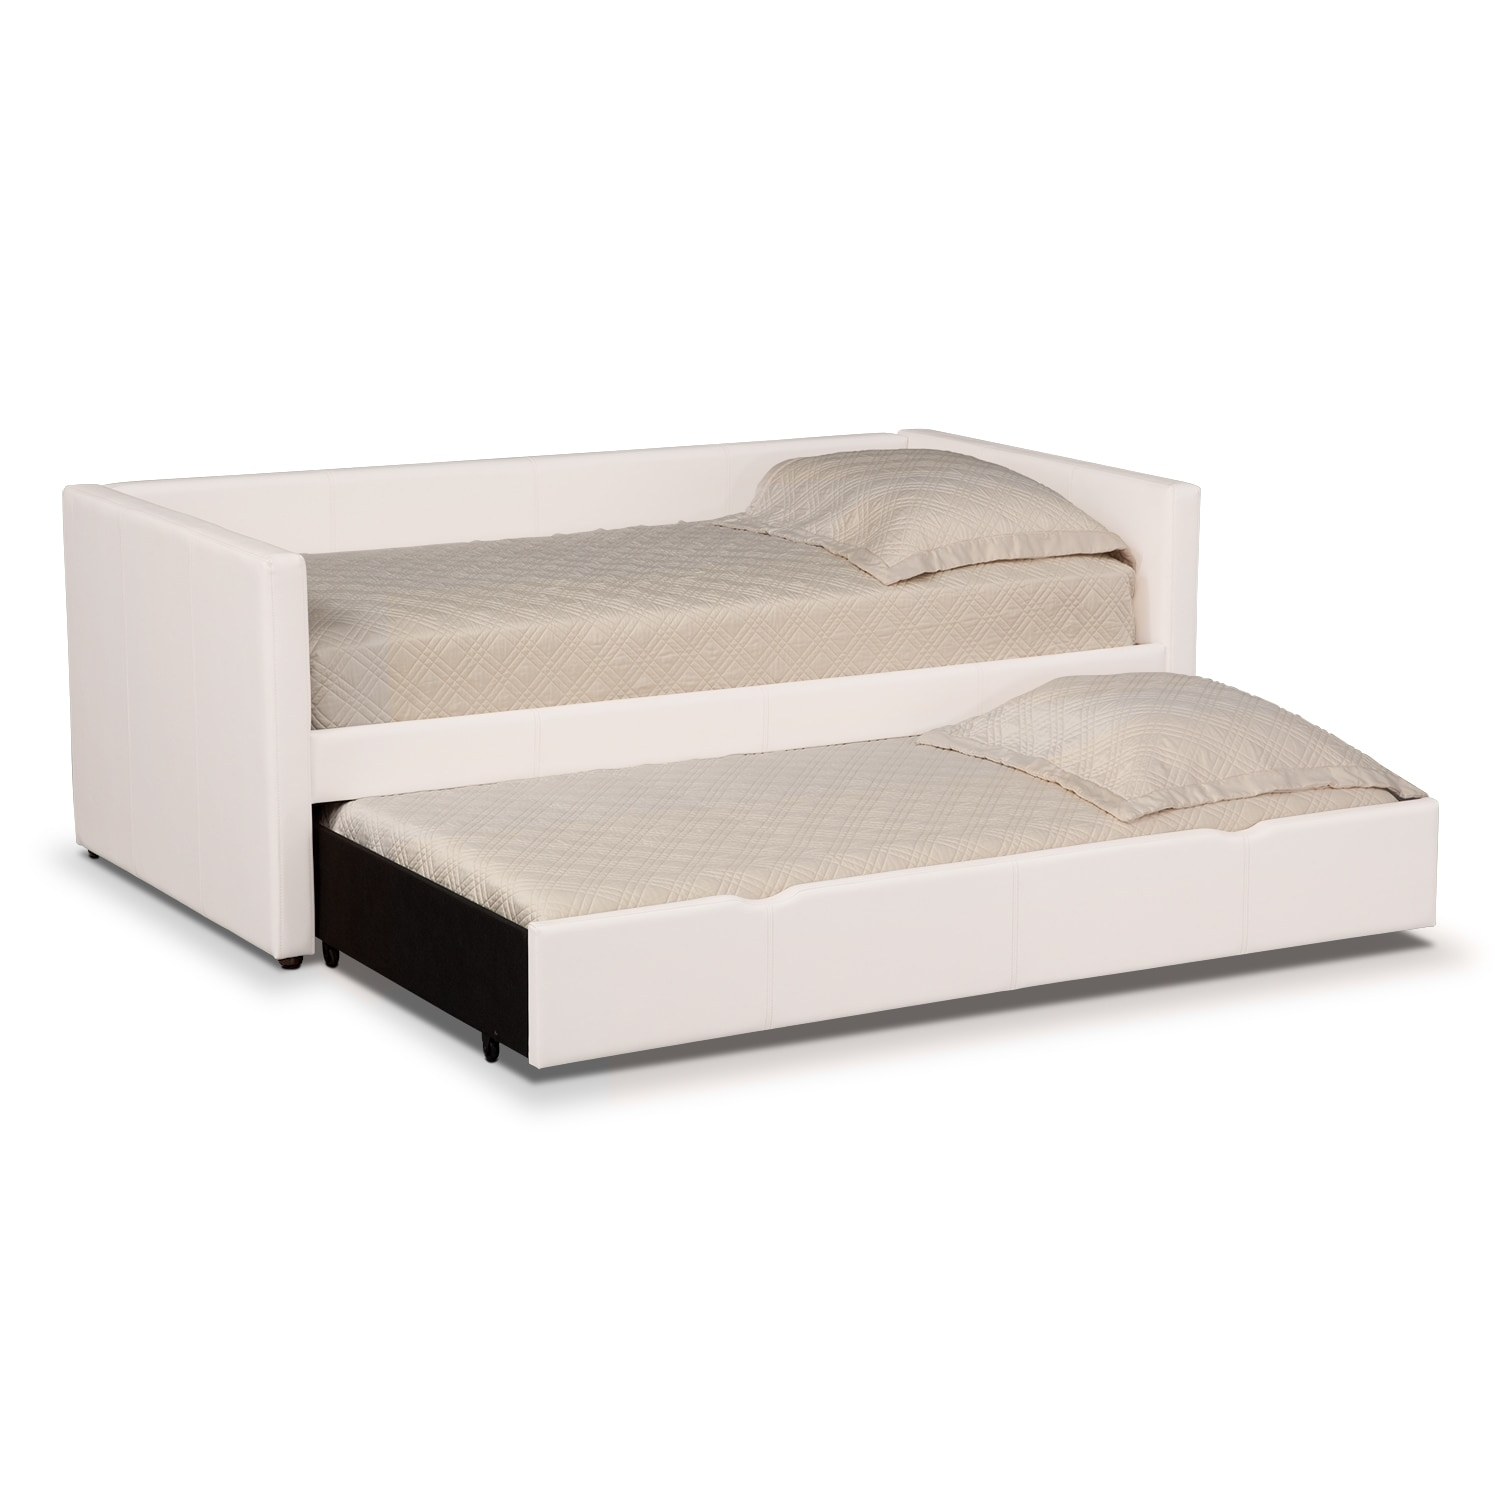 Queen size daybed with trundle twin daybed with trundle